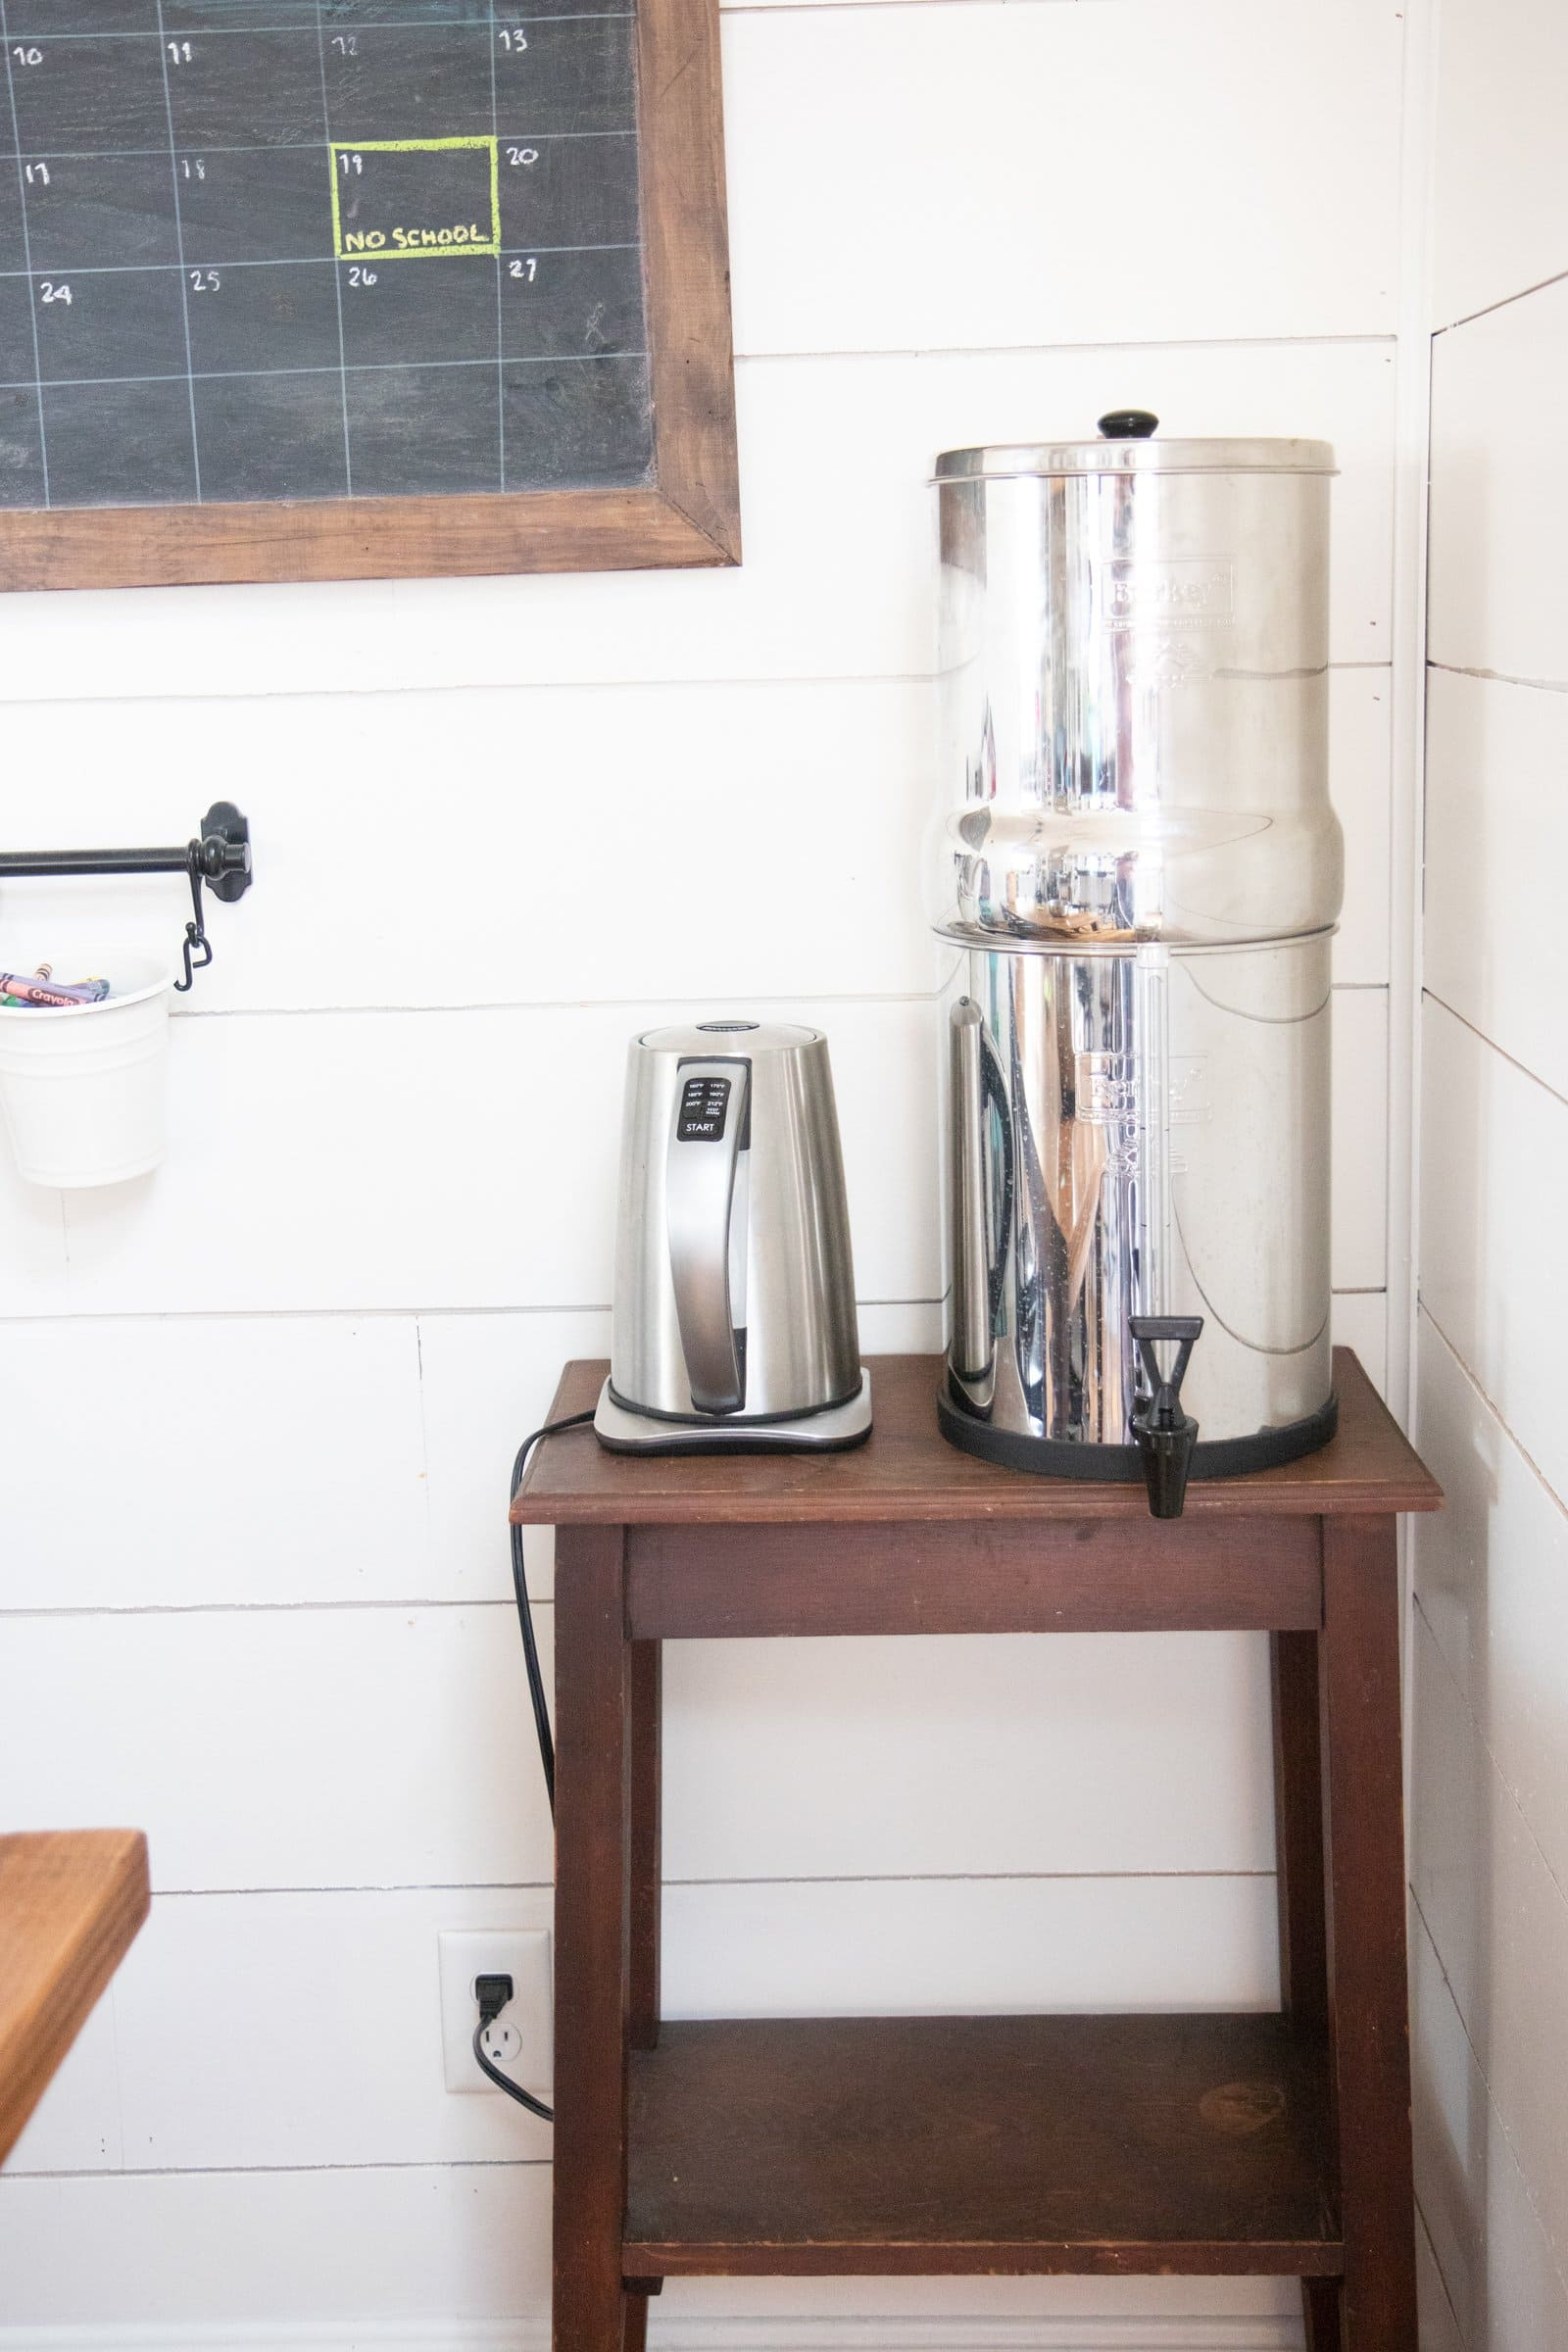 Stainless steel water filter next to an electric tea kettle